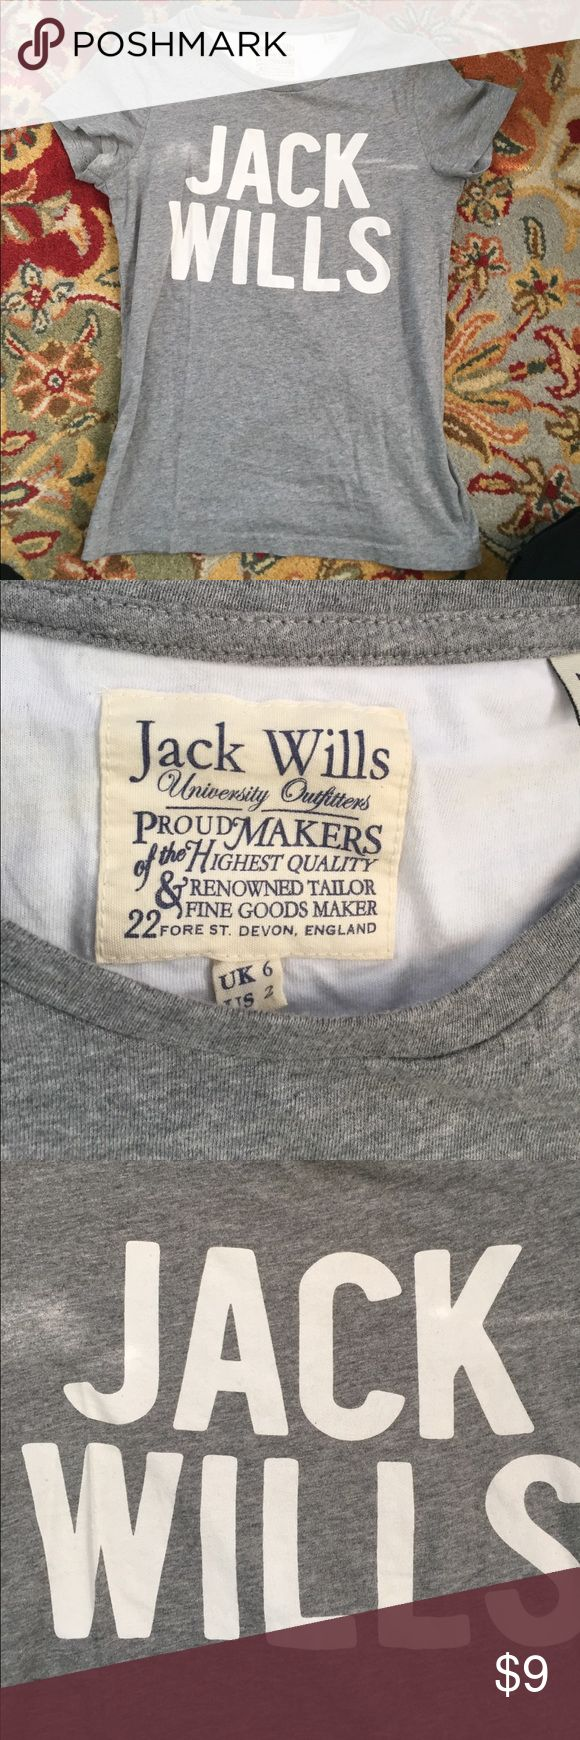 Jack Wills t shirt Good condition US SIZE 2. Cotton t shirt. Jack Wills Tops Tees - Short Sleeve